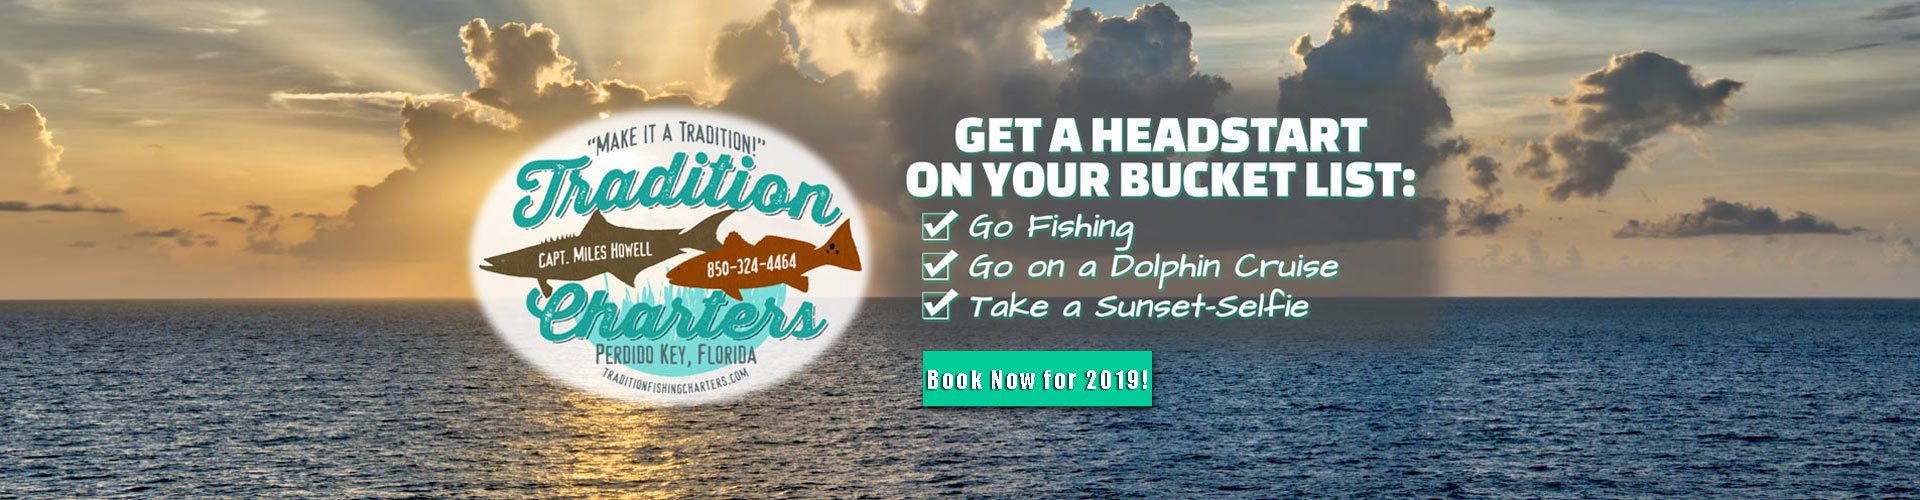 Get a head-start on your bucket list: Go fishing; Go on a dolphin cruise; Take a sunset-selfie; Click here to Book Now!